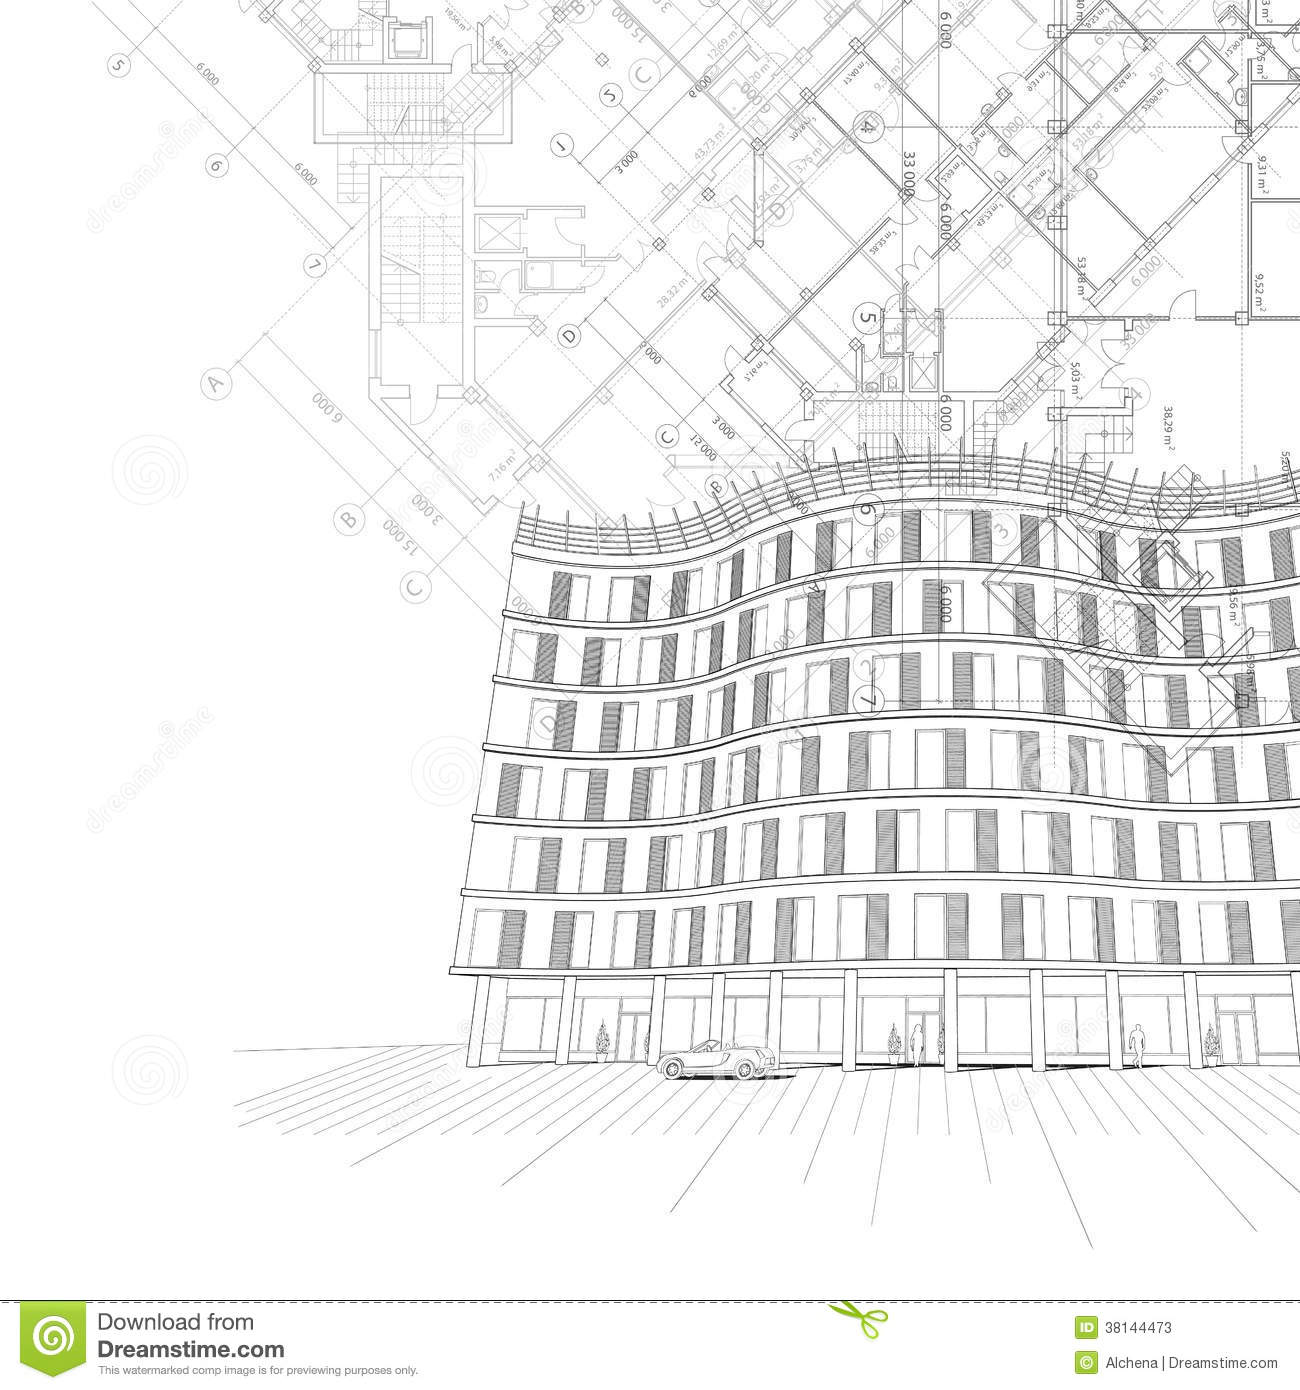 rchitectural Background With Building nd Plans Stock Photos ... - ^